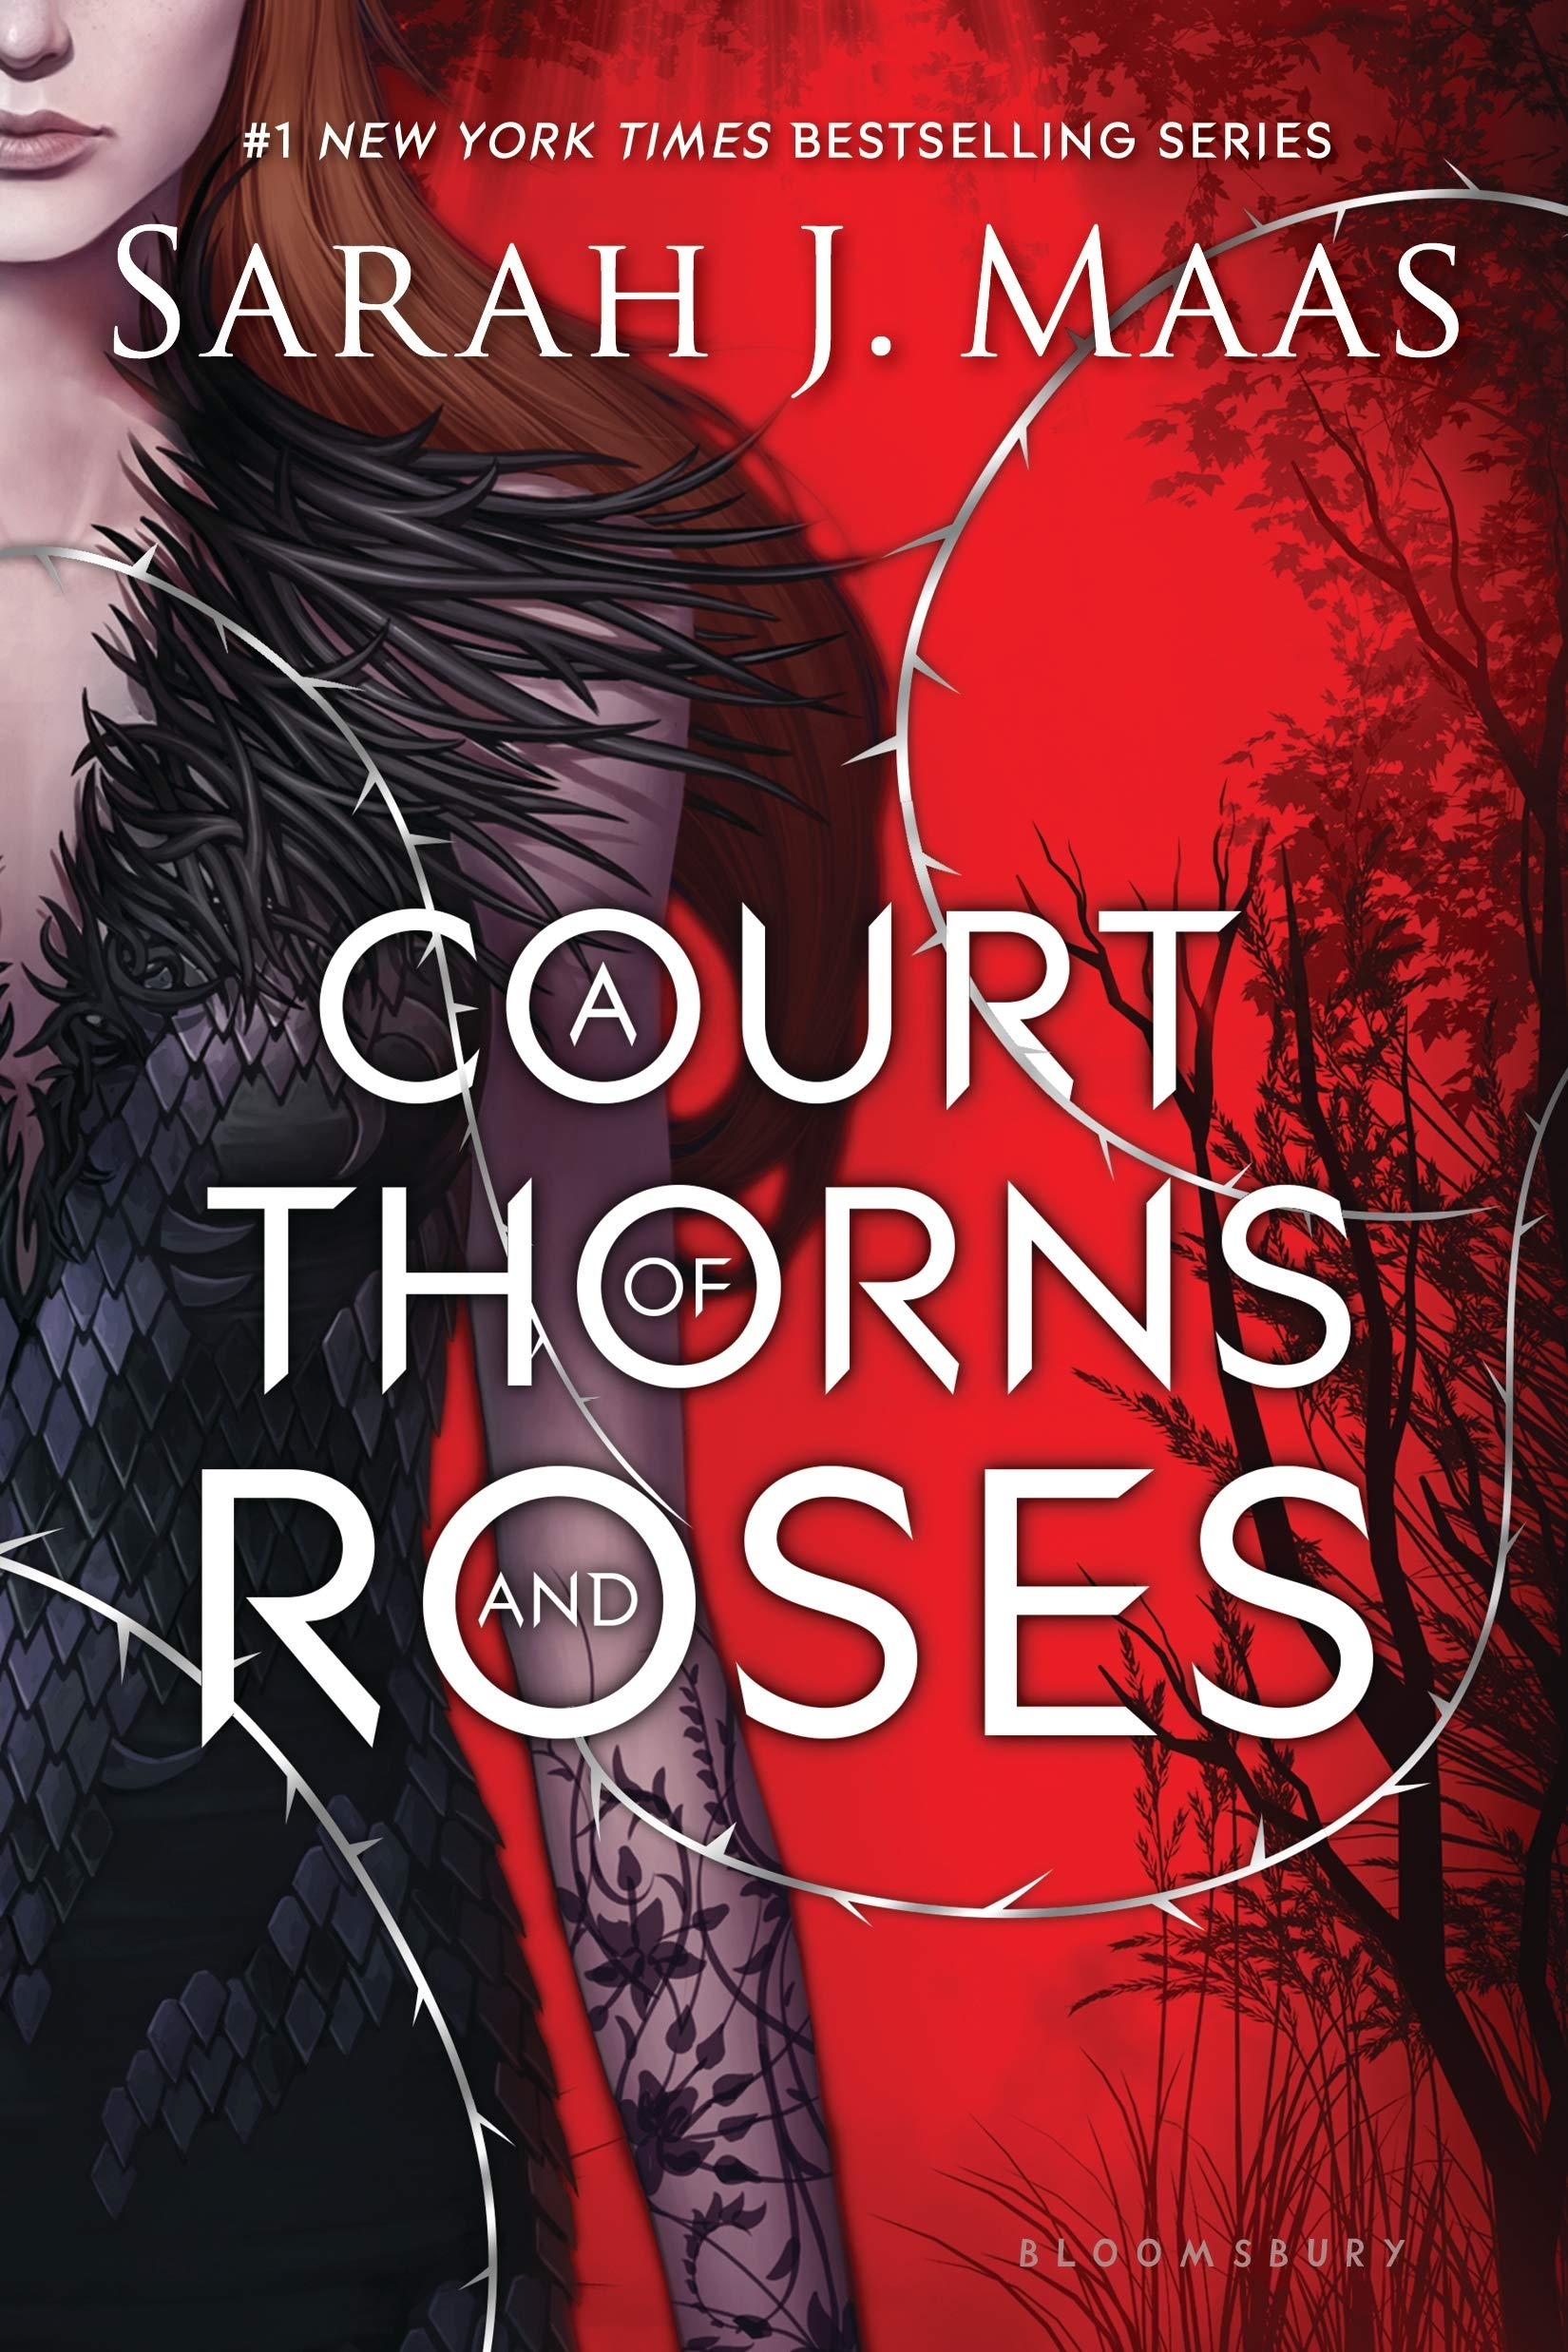 Court Thorns Roses